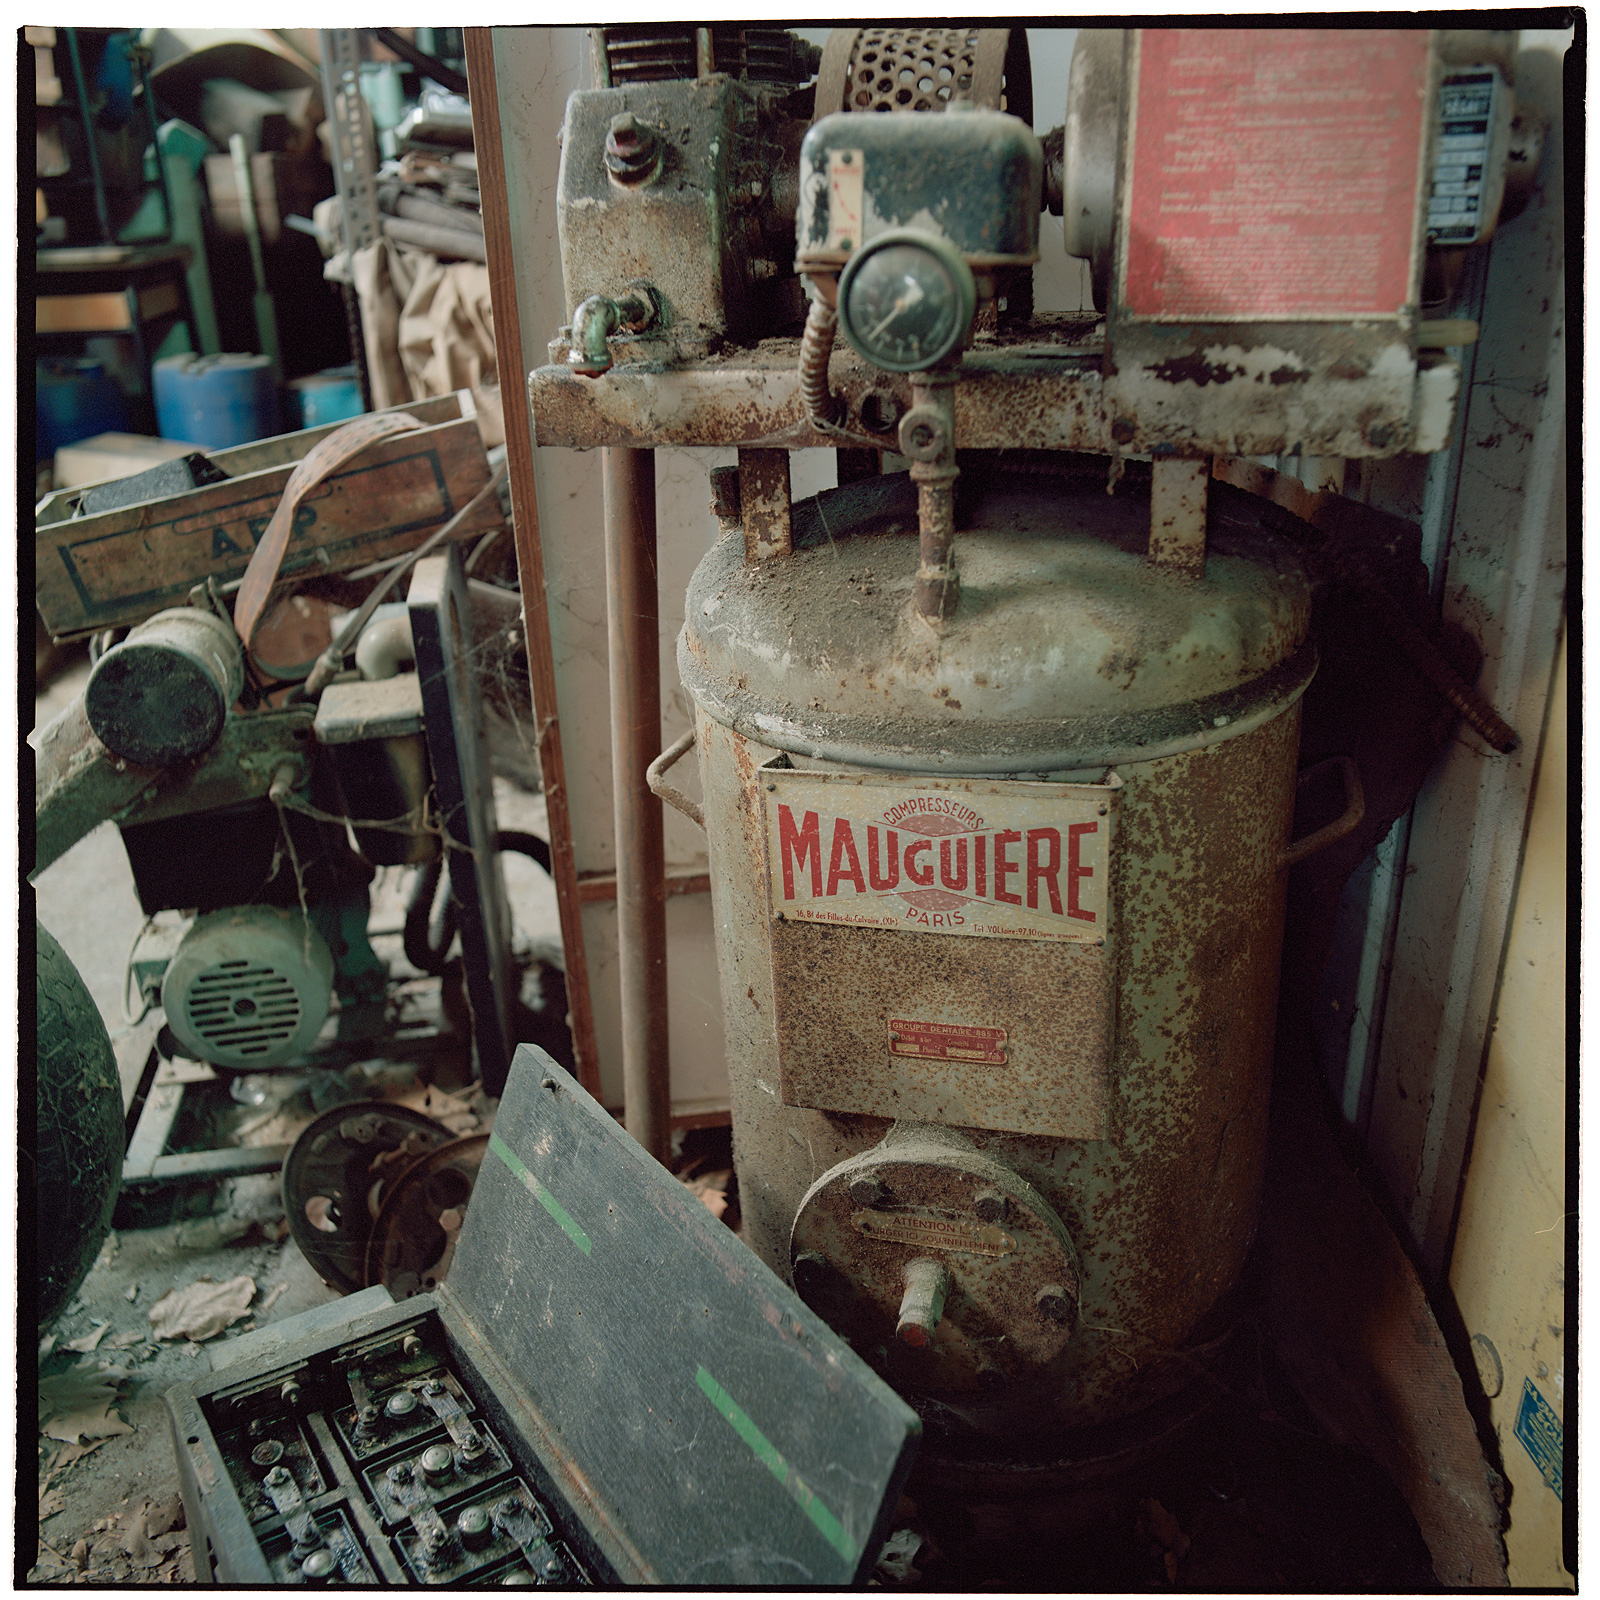 Maugiére compressor and an old battery in the workshop area at Cimetière camions de pompiers, France.